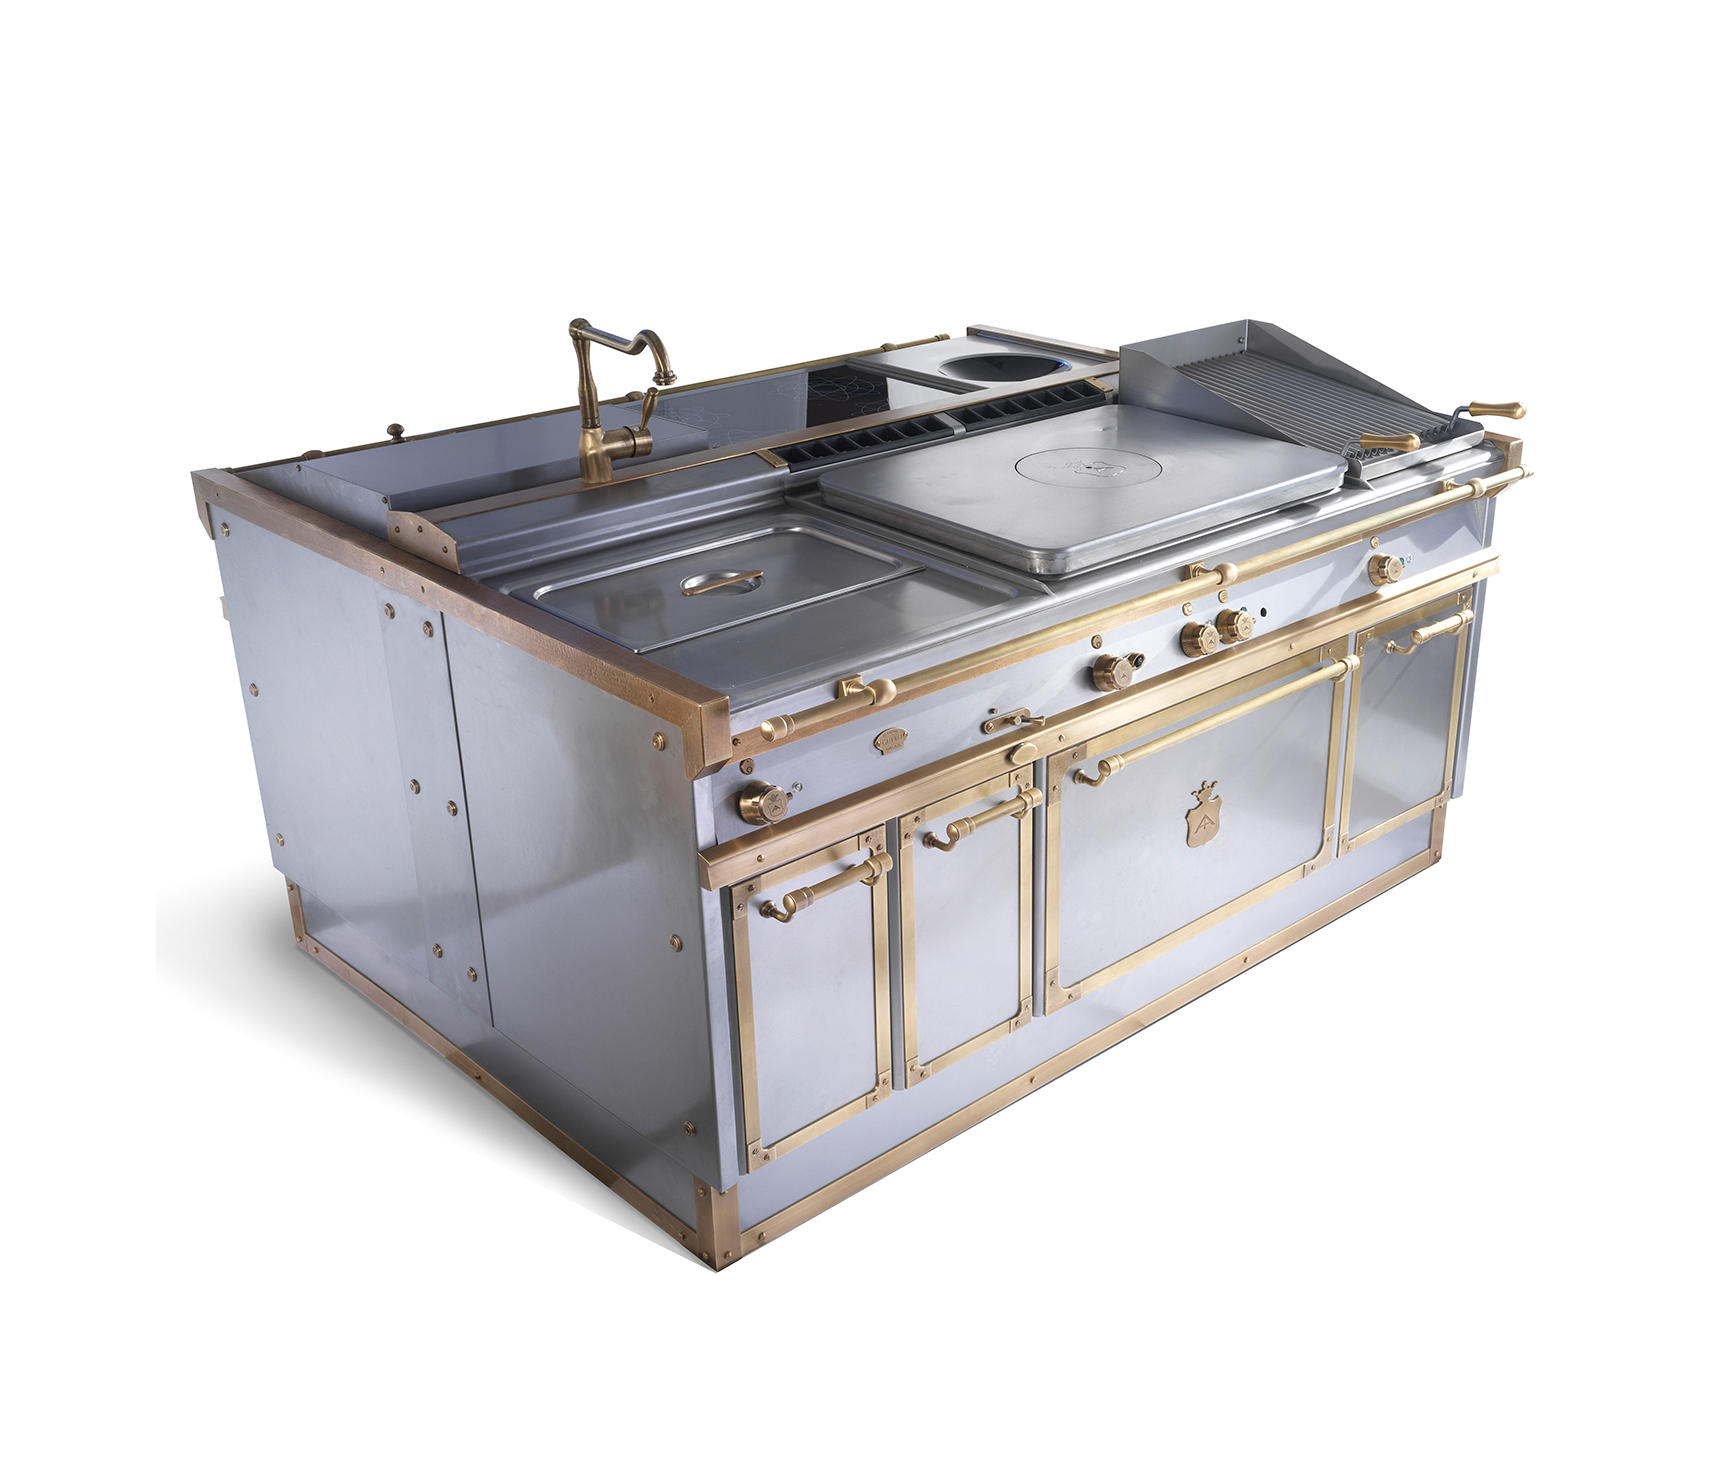 Machines de cuisson p70 le blocs cuisines de officine for Machine de cuisson